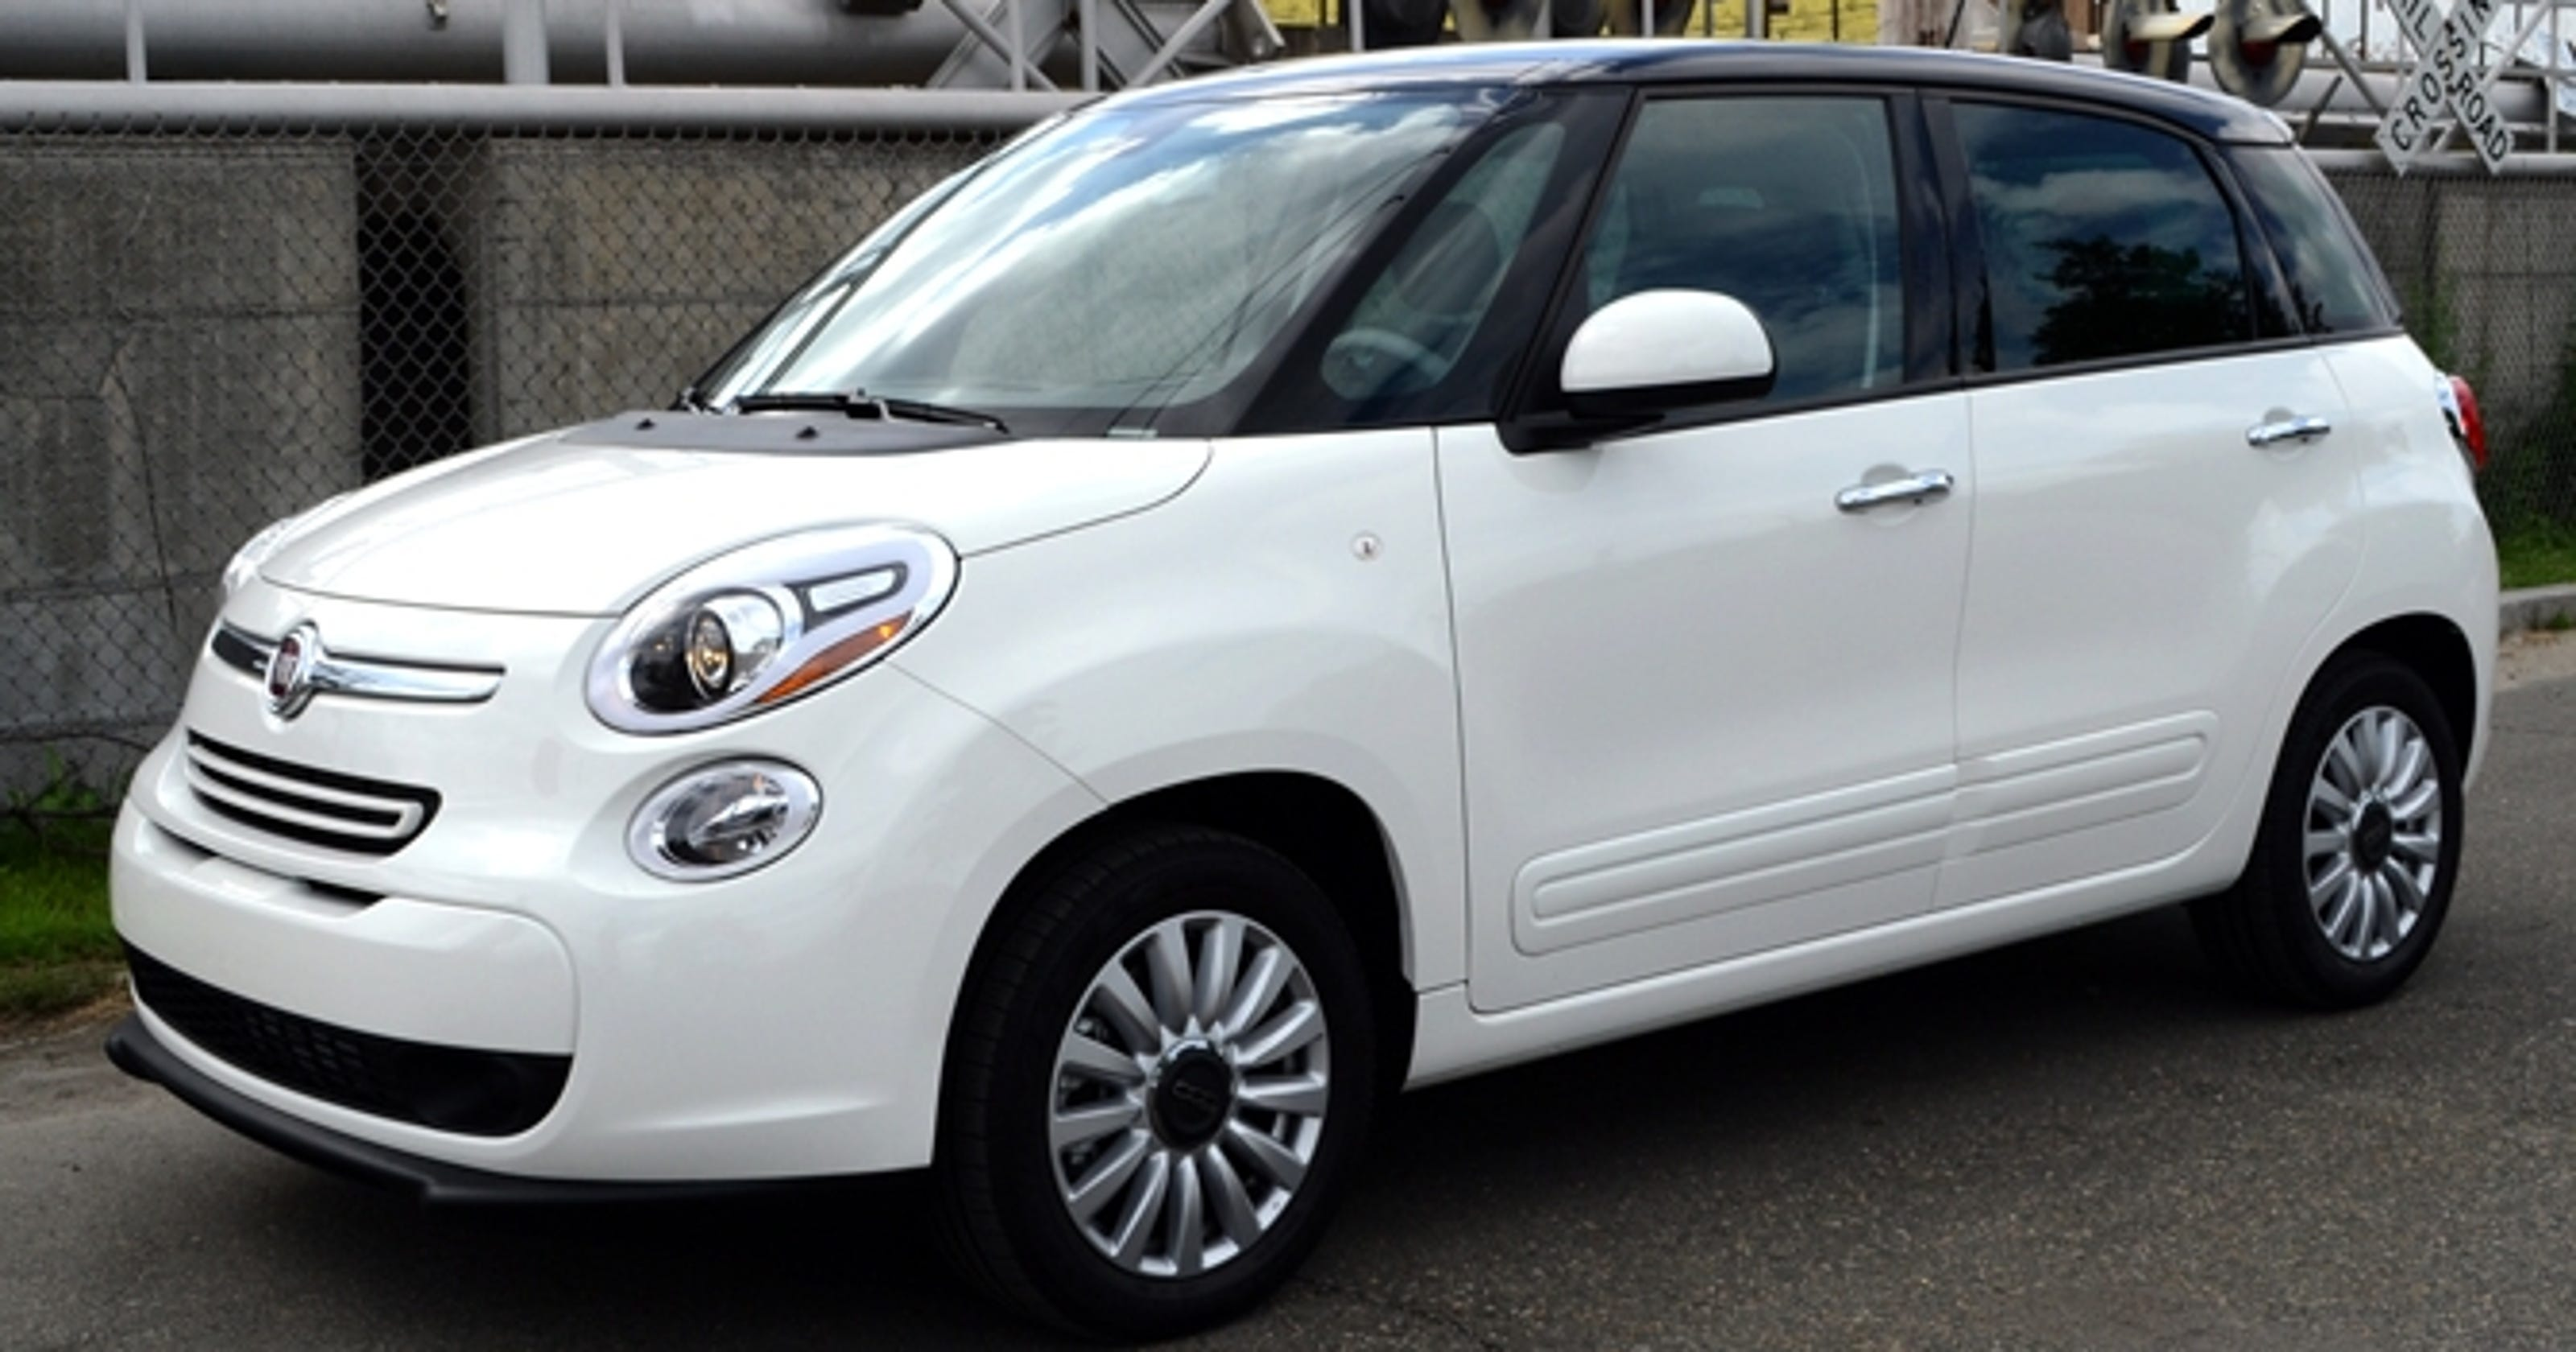 reviewed: first drive of 4-door, 5-seat fiat 500l